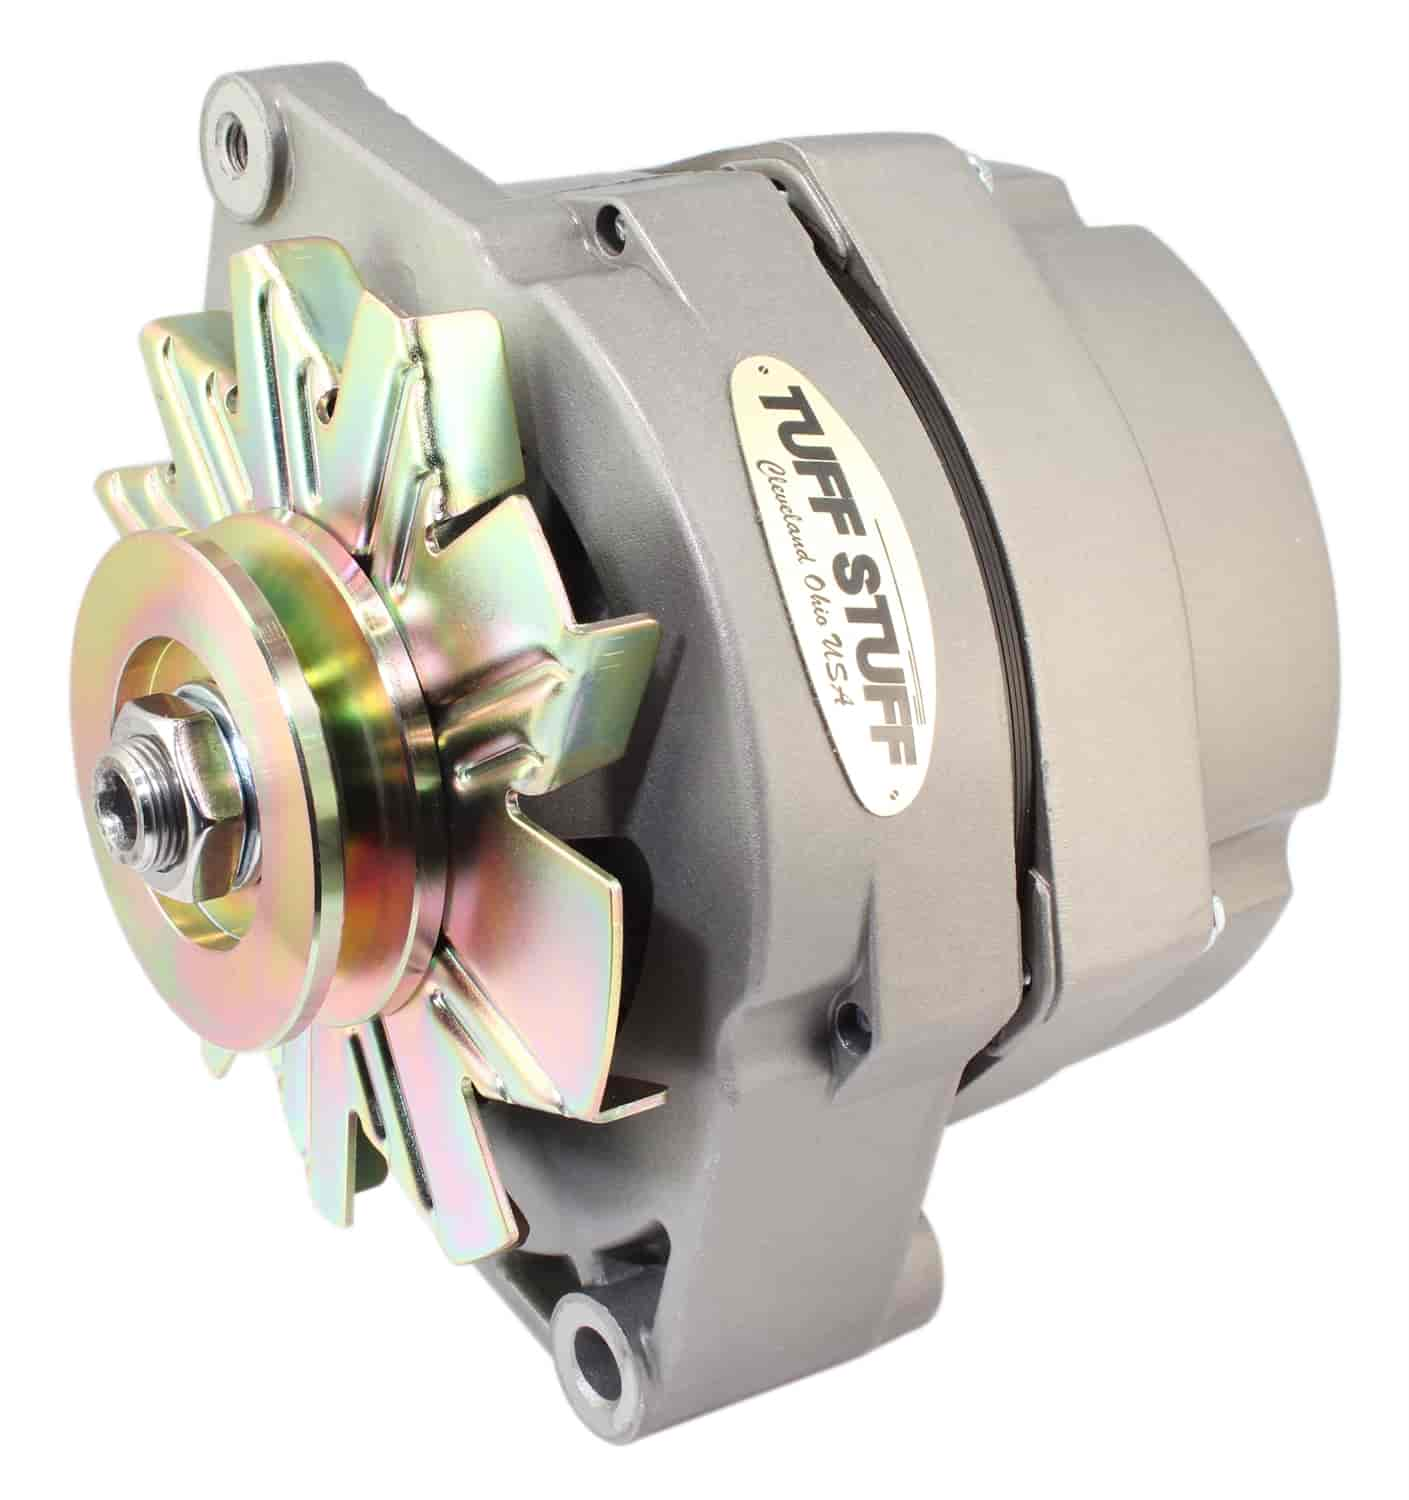 tuff stuff 7127 gm alternator 80 amp internal regulator. Black Bedroom Furniture Sets. Home Design Ideas